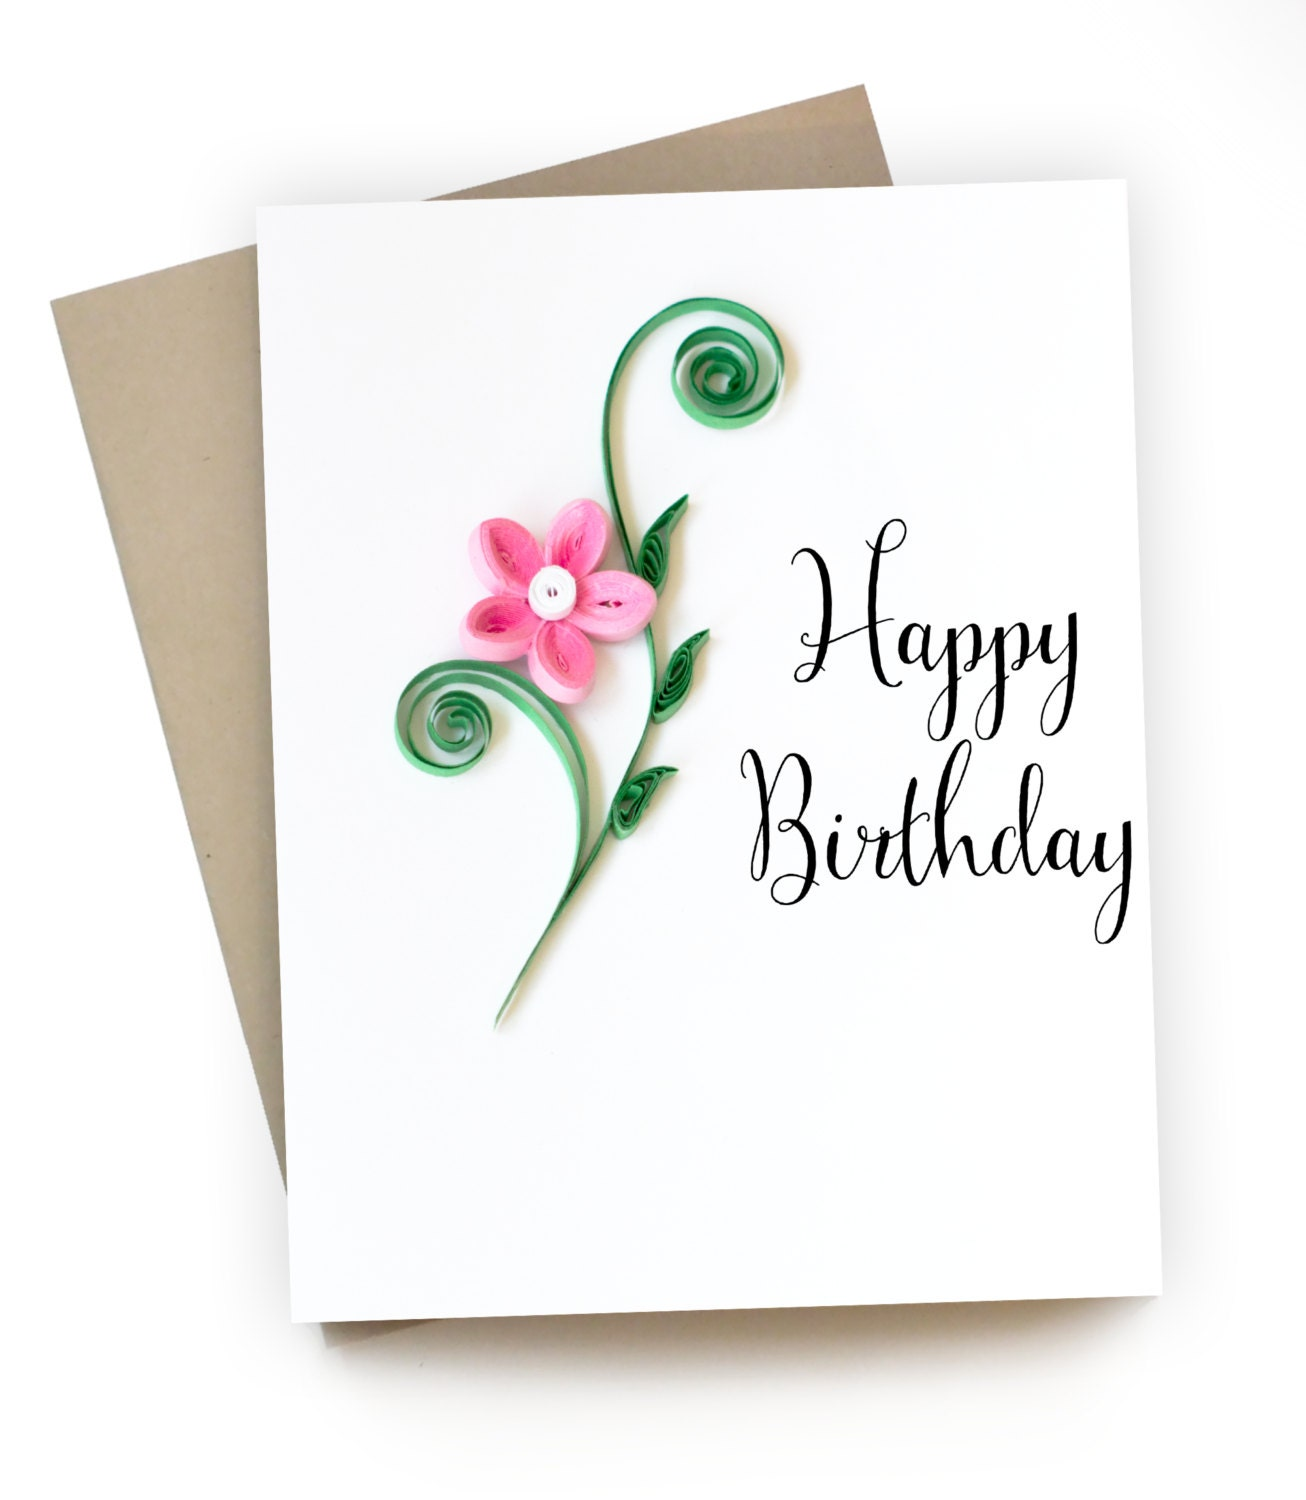 Birthday Card Friend Birthday Card Happy Birthday Card – Birthday Cards Greetings Friend